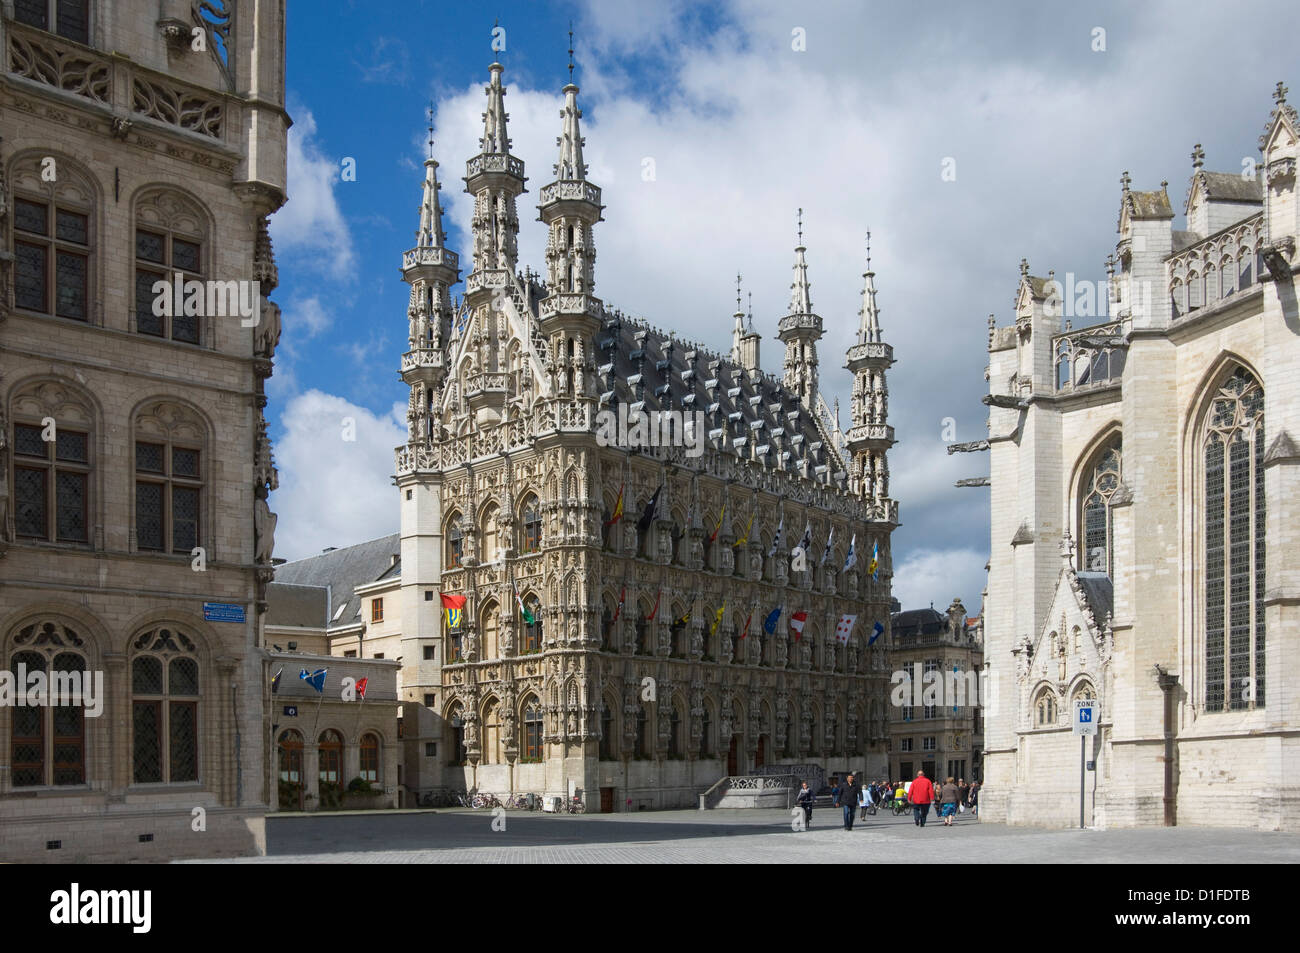 The 15th century late Gothic Town Hall in the Grote Markt, Leuven, Belgium, Europe Stock Photo